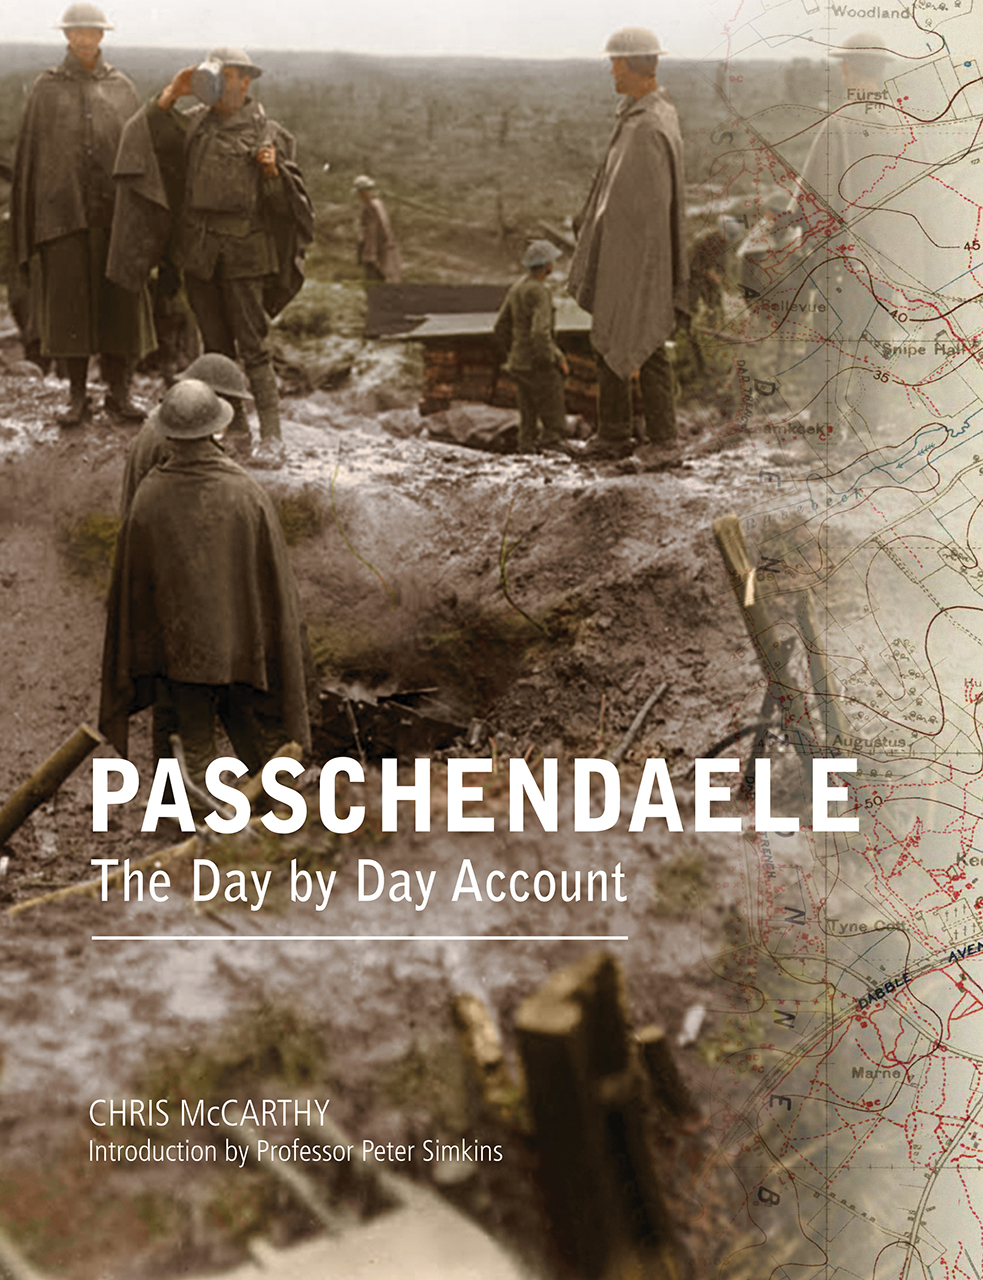 Passchendaele: The Day by Day Account